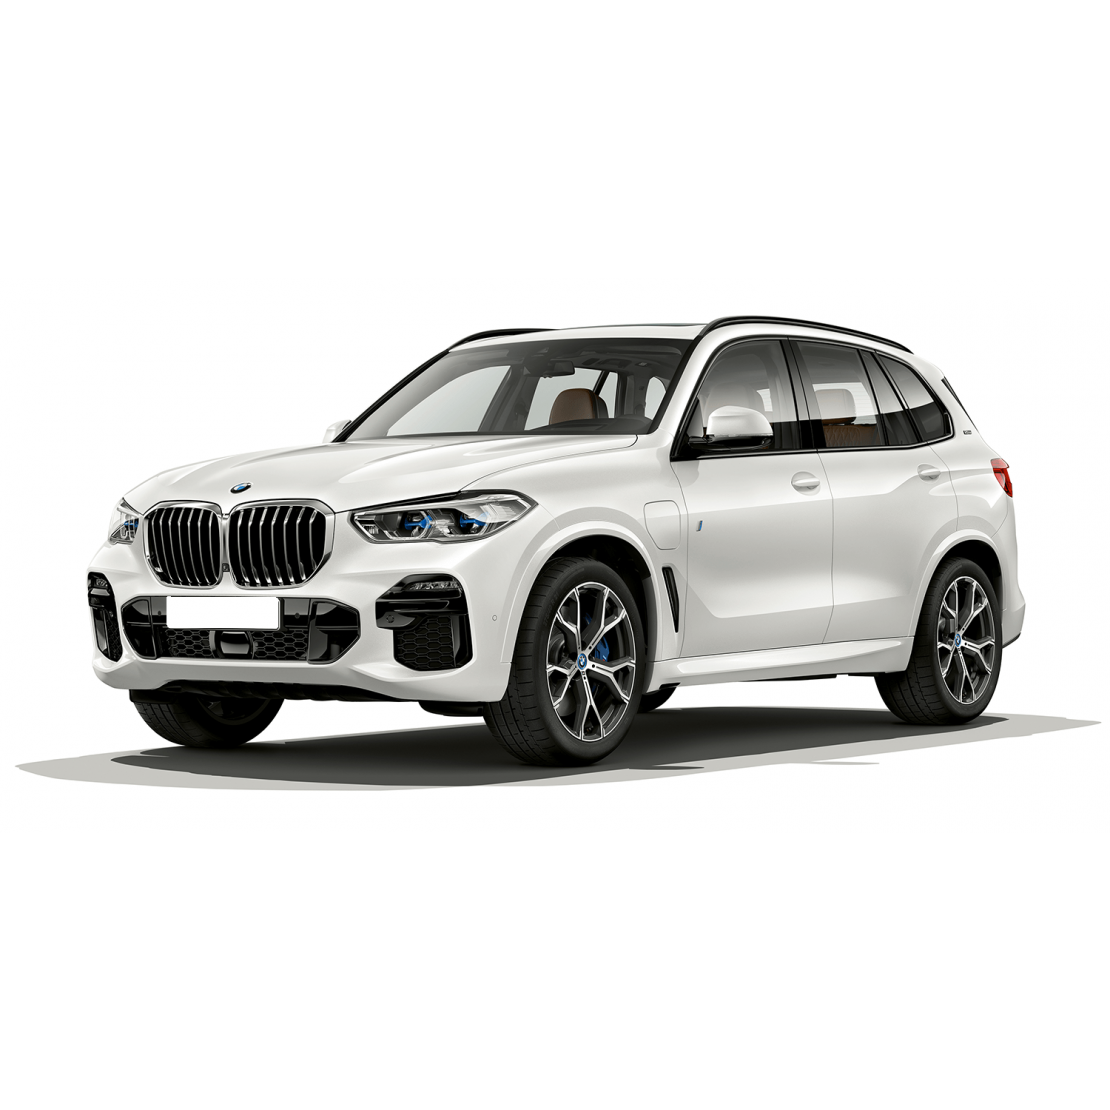 BMW X5 XDRIVE 45E MSPORT PHEV